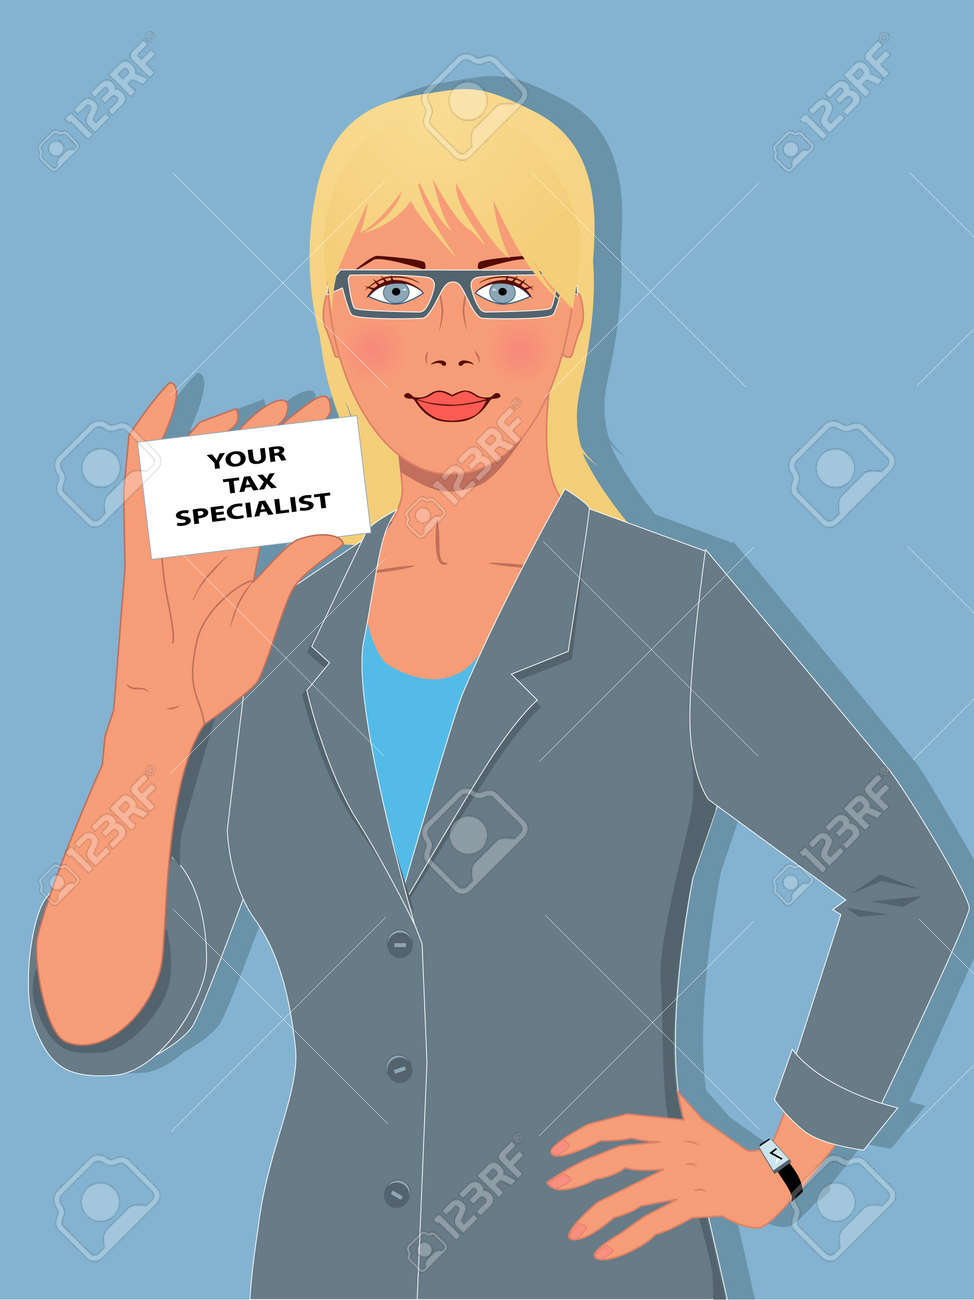 Cute blond woman in a business suit holding a symbolic tax specialist business card Stock Vector - 18494458